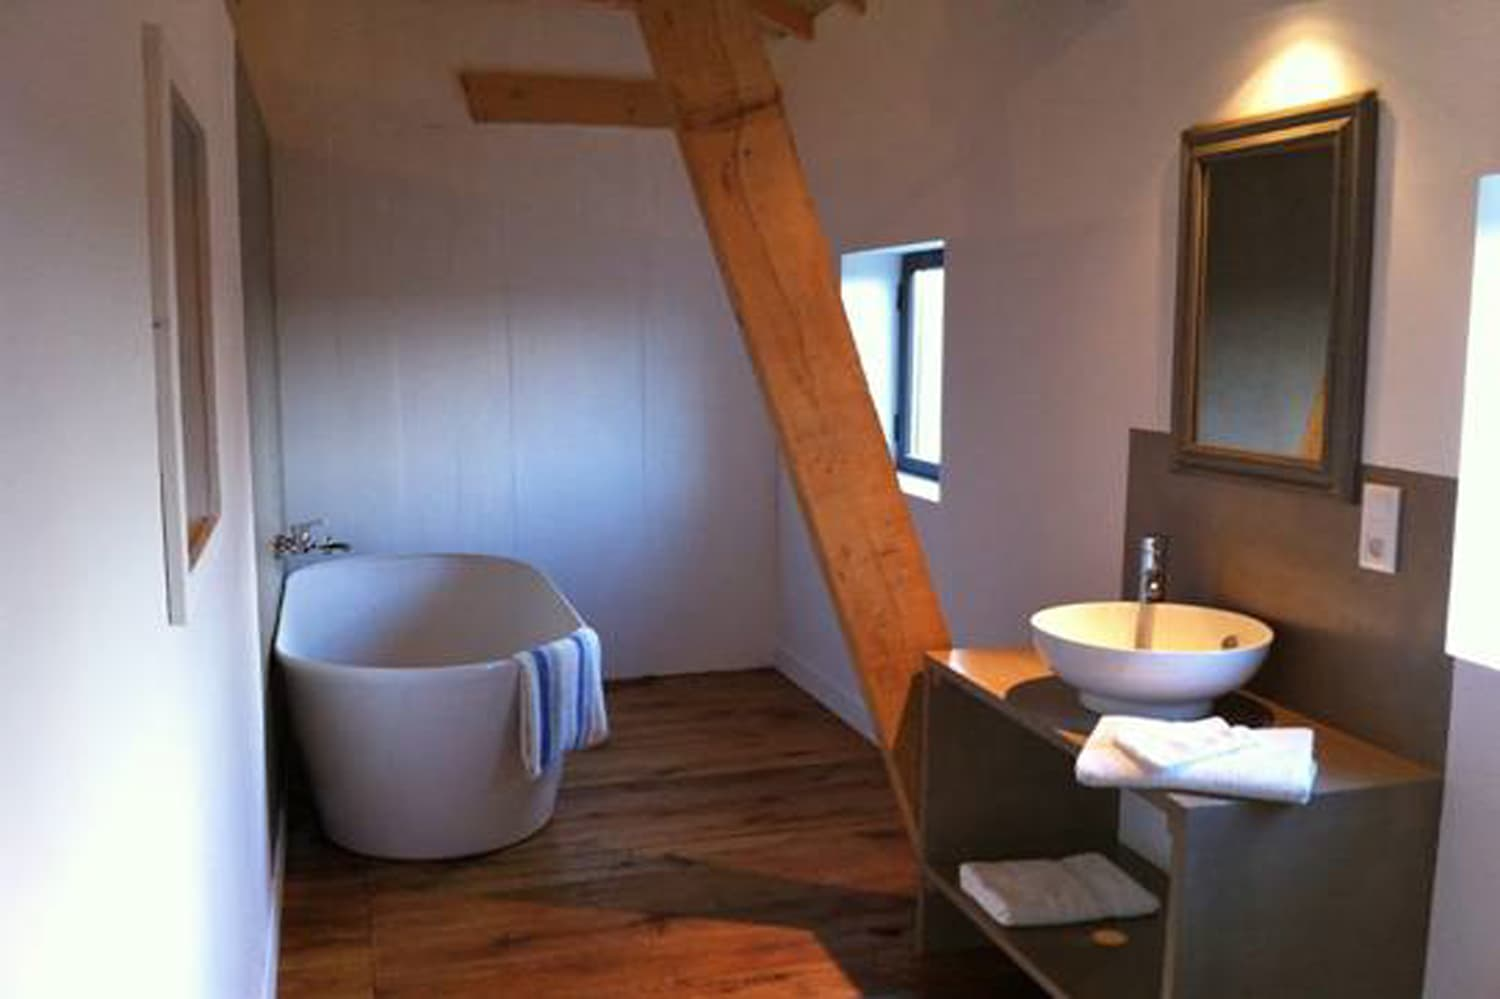 Bathroom in Dordogne holiday home